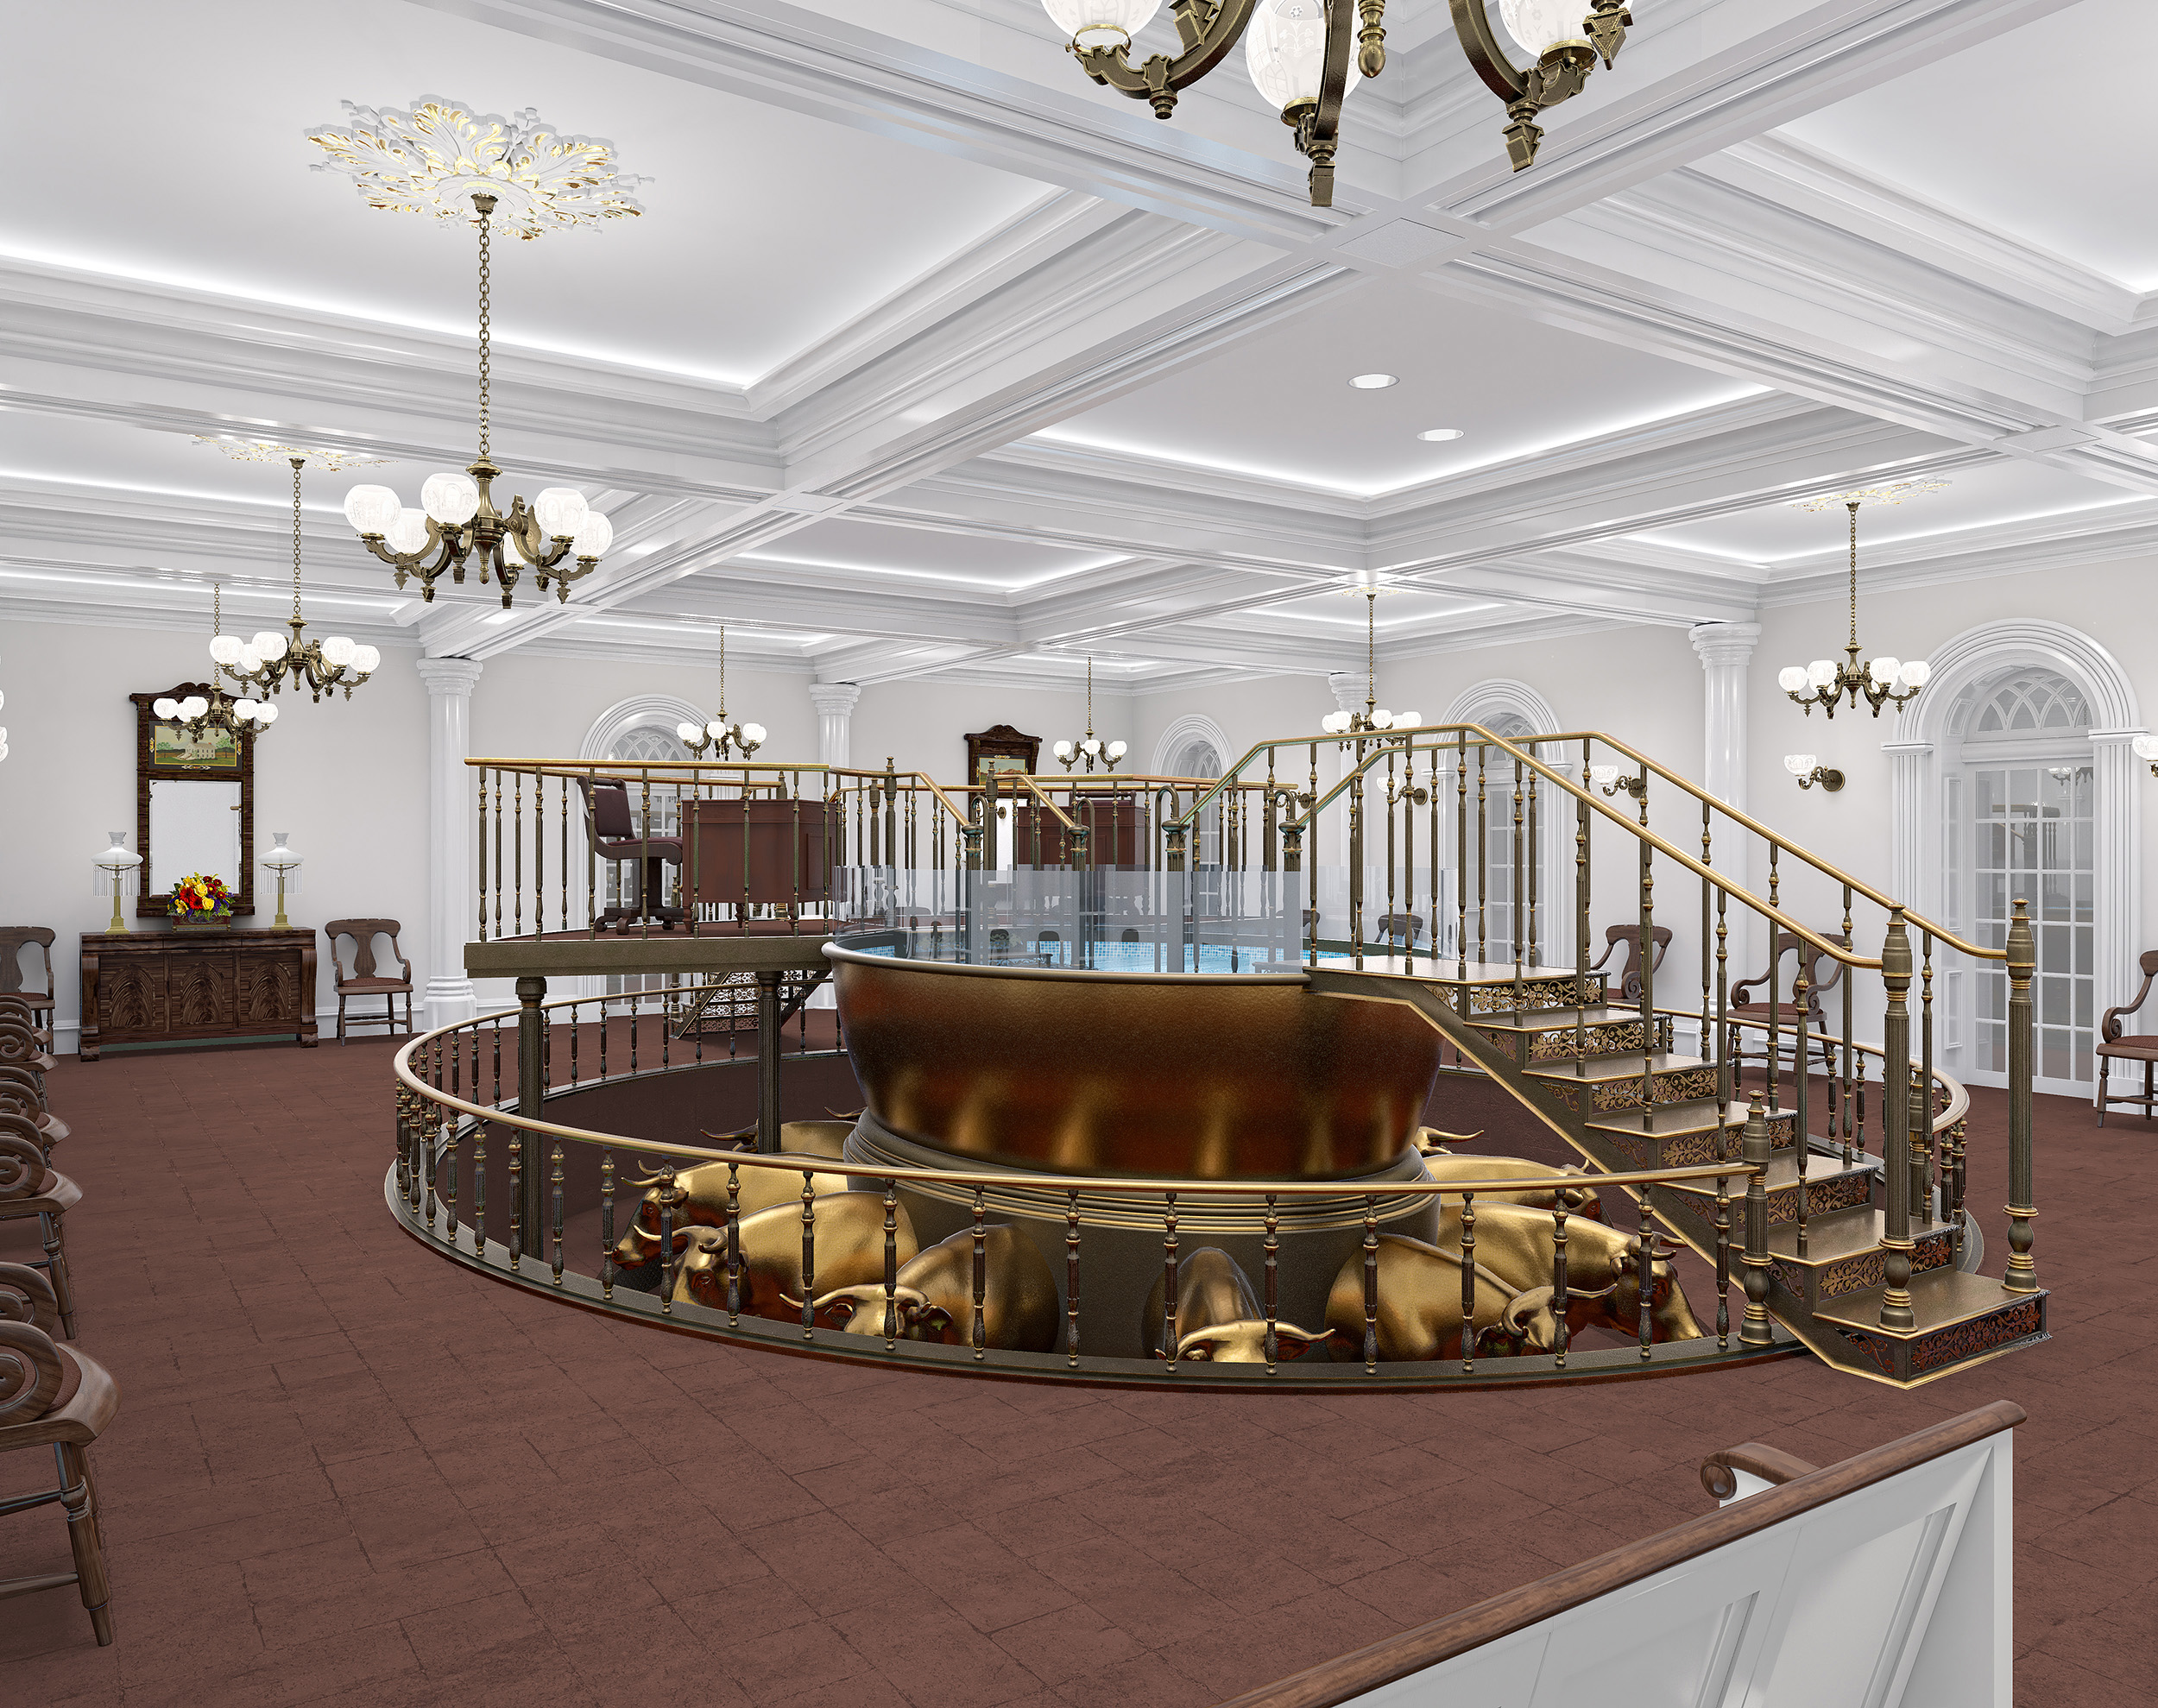 A rendering of the baptistry for the St. George Utah Temple. The temple will close Nov. 4 for extensive renovations.